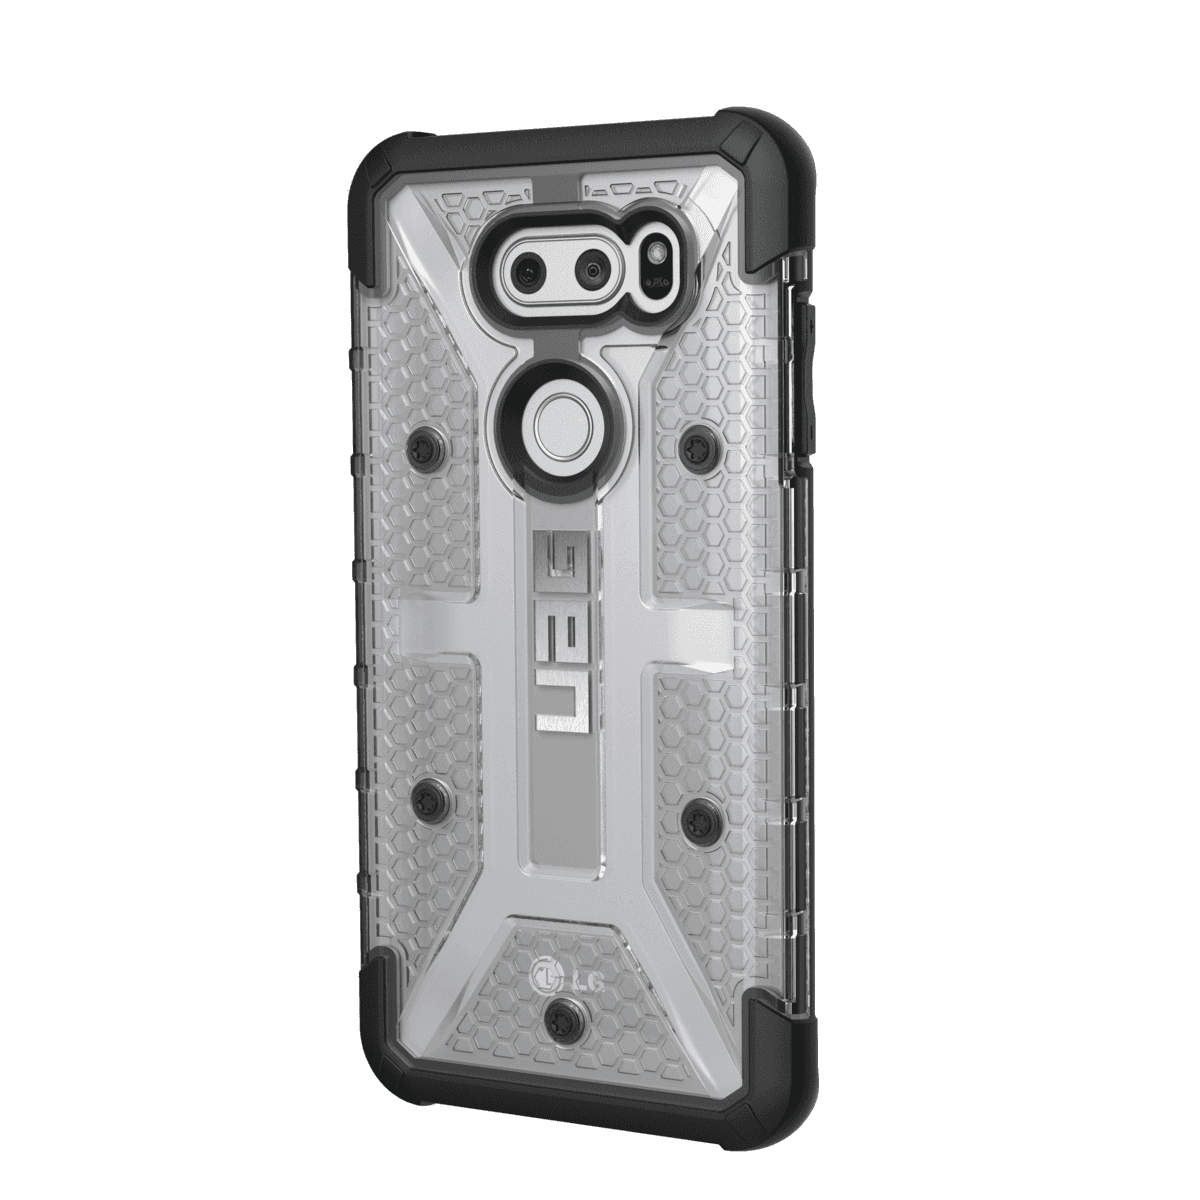 Galaxy s6 cases shop samsung cases online uag urban armor gear - Shop Related Products